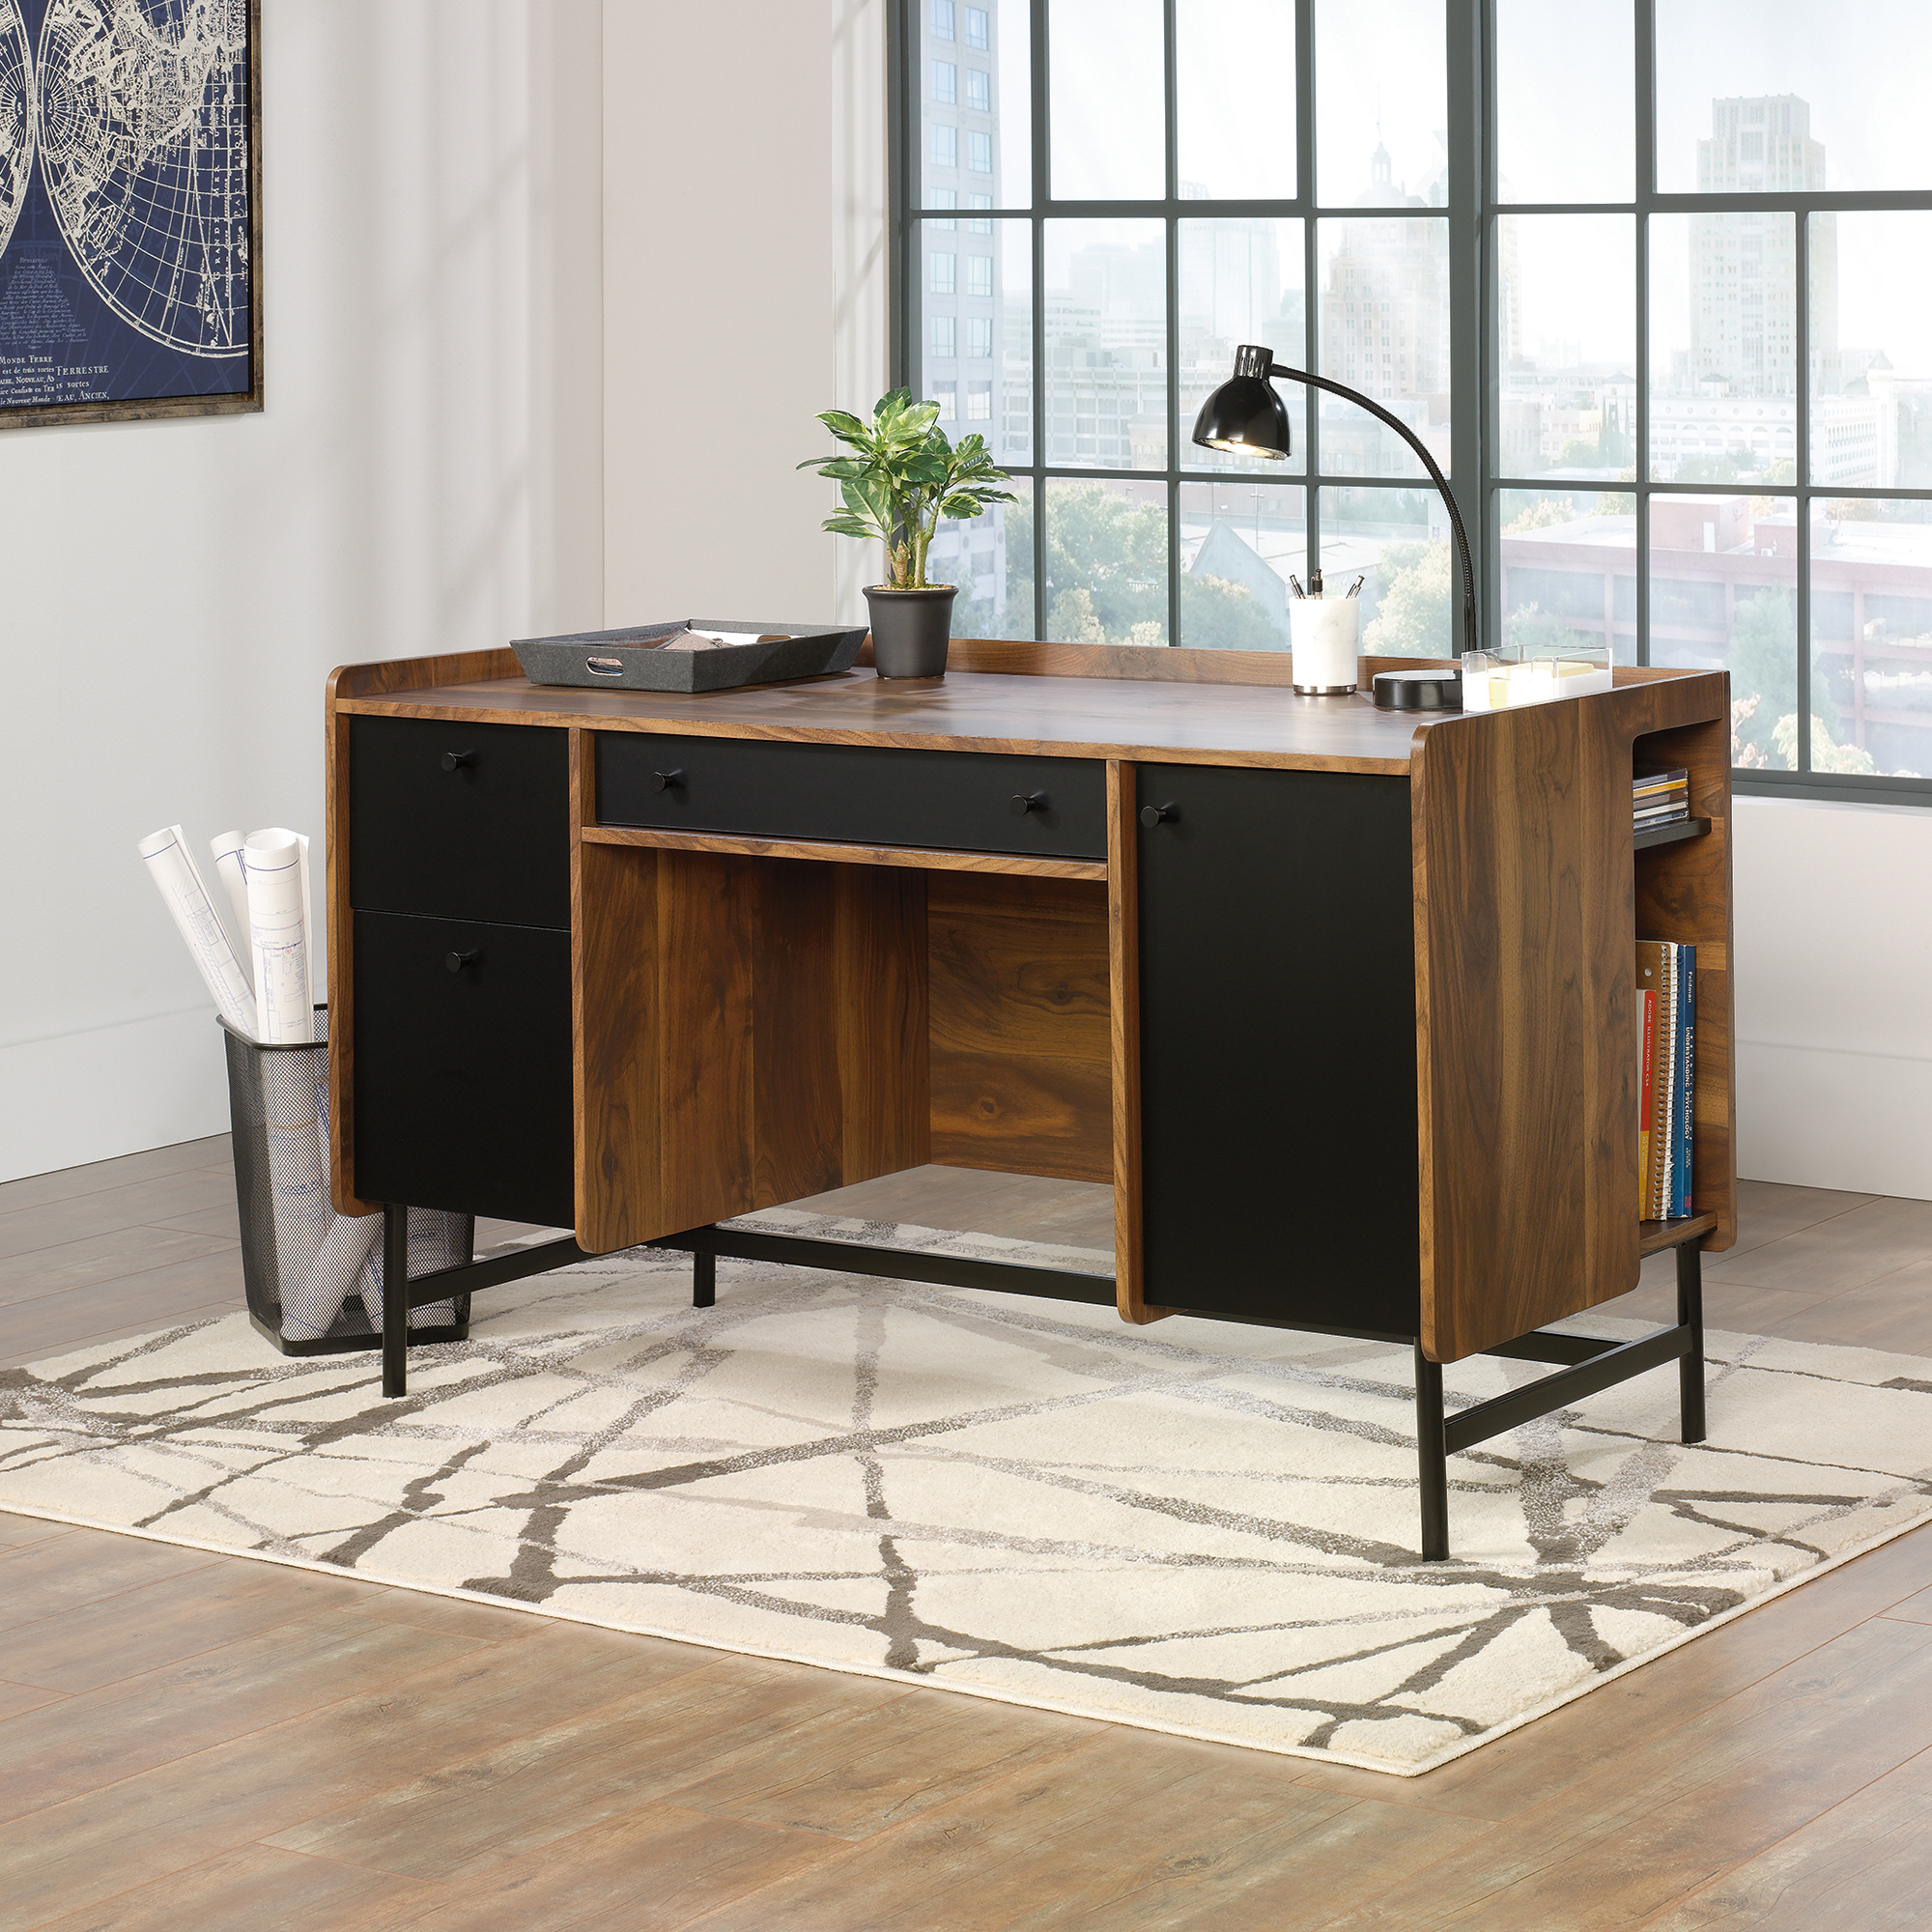 Teknik Office Hampstead Desk Grand Walnut effect finish spacious work area Two drawers with full extension slides Powdercoated contrasting metal base